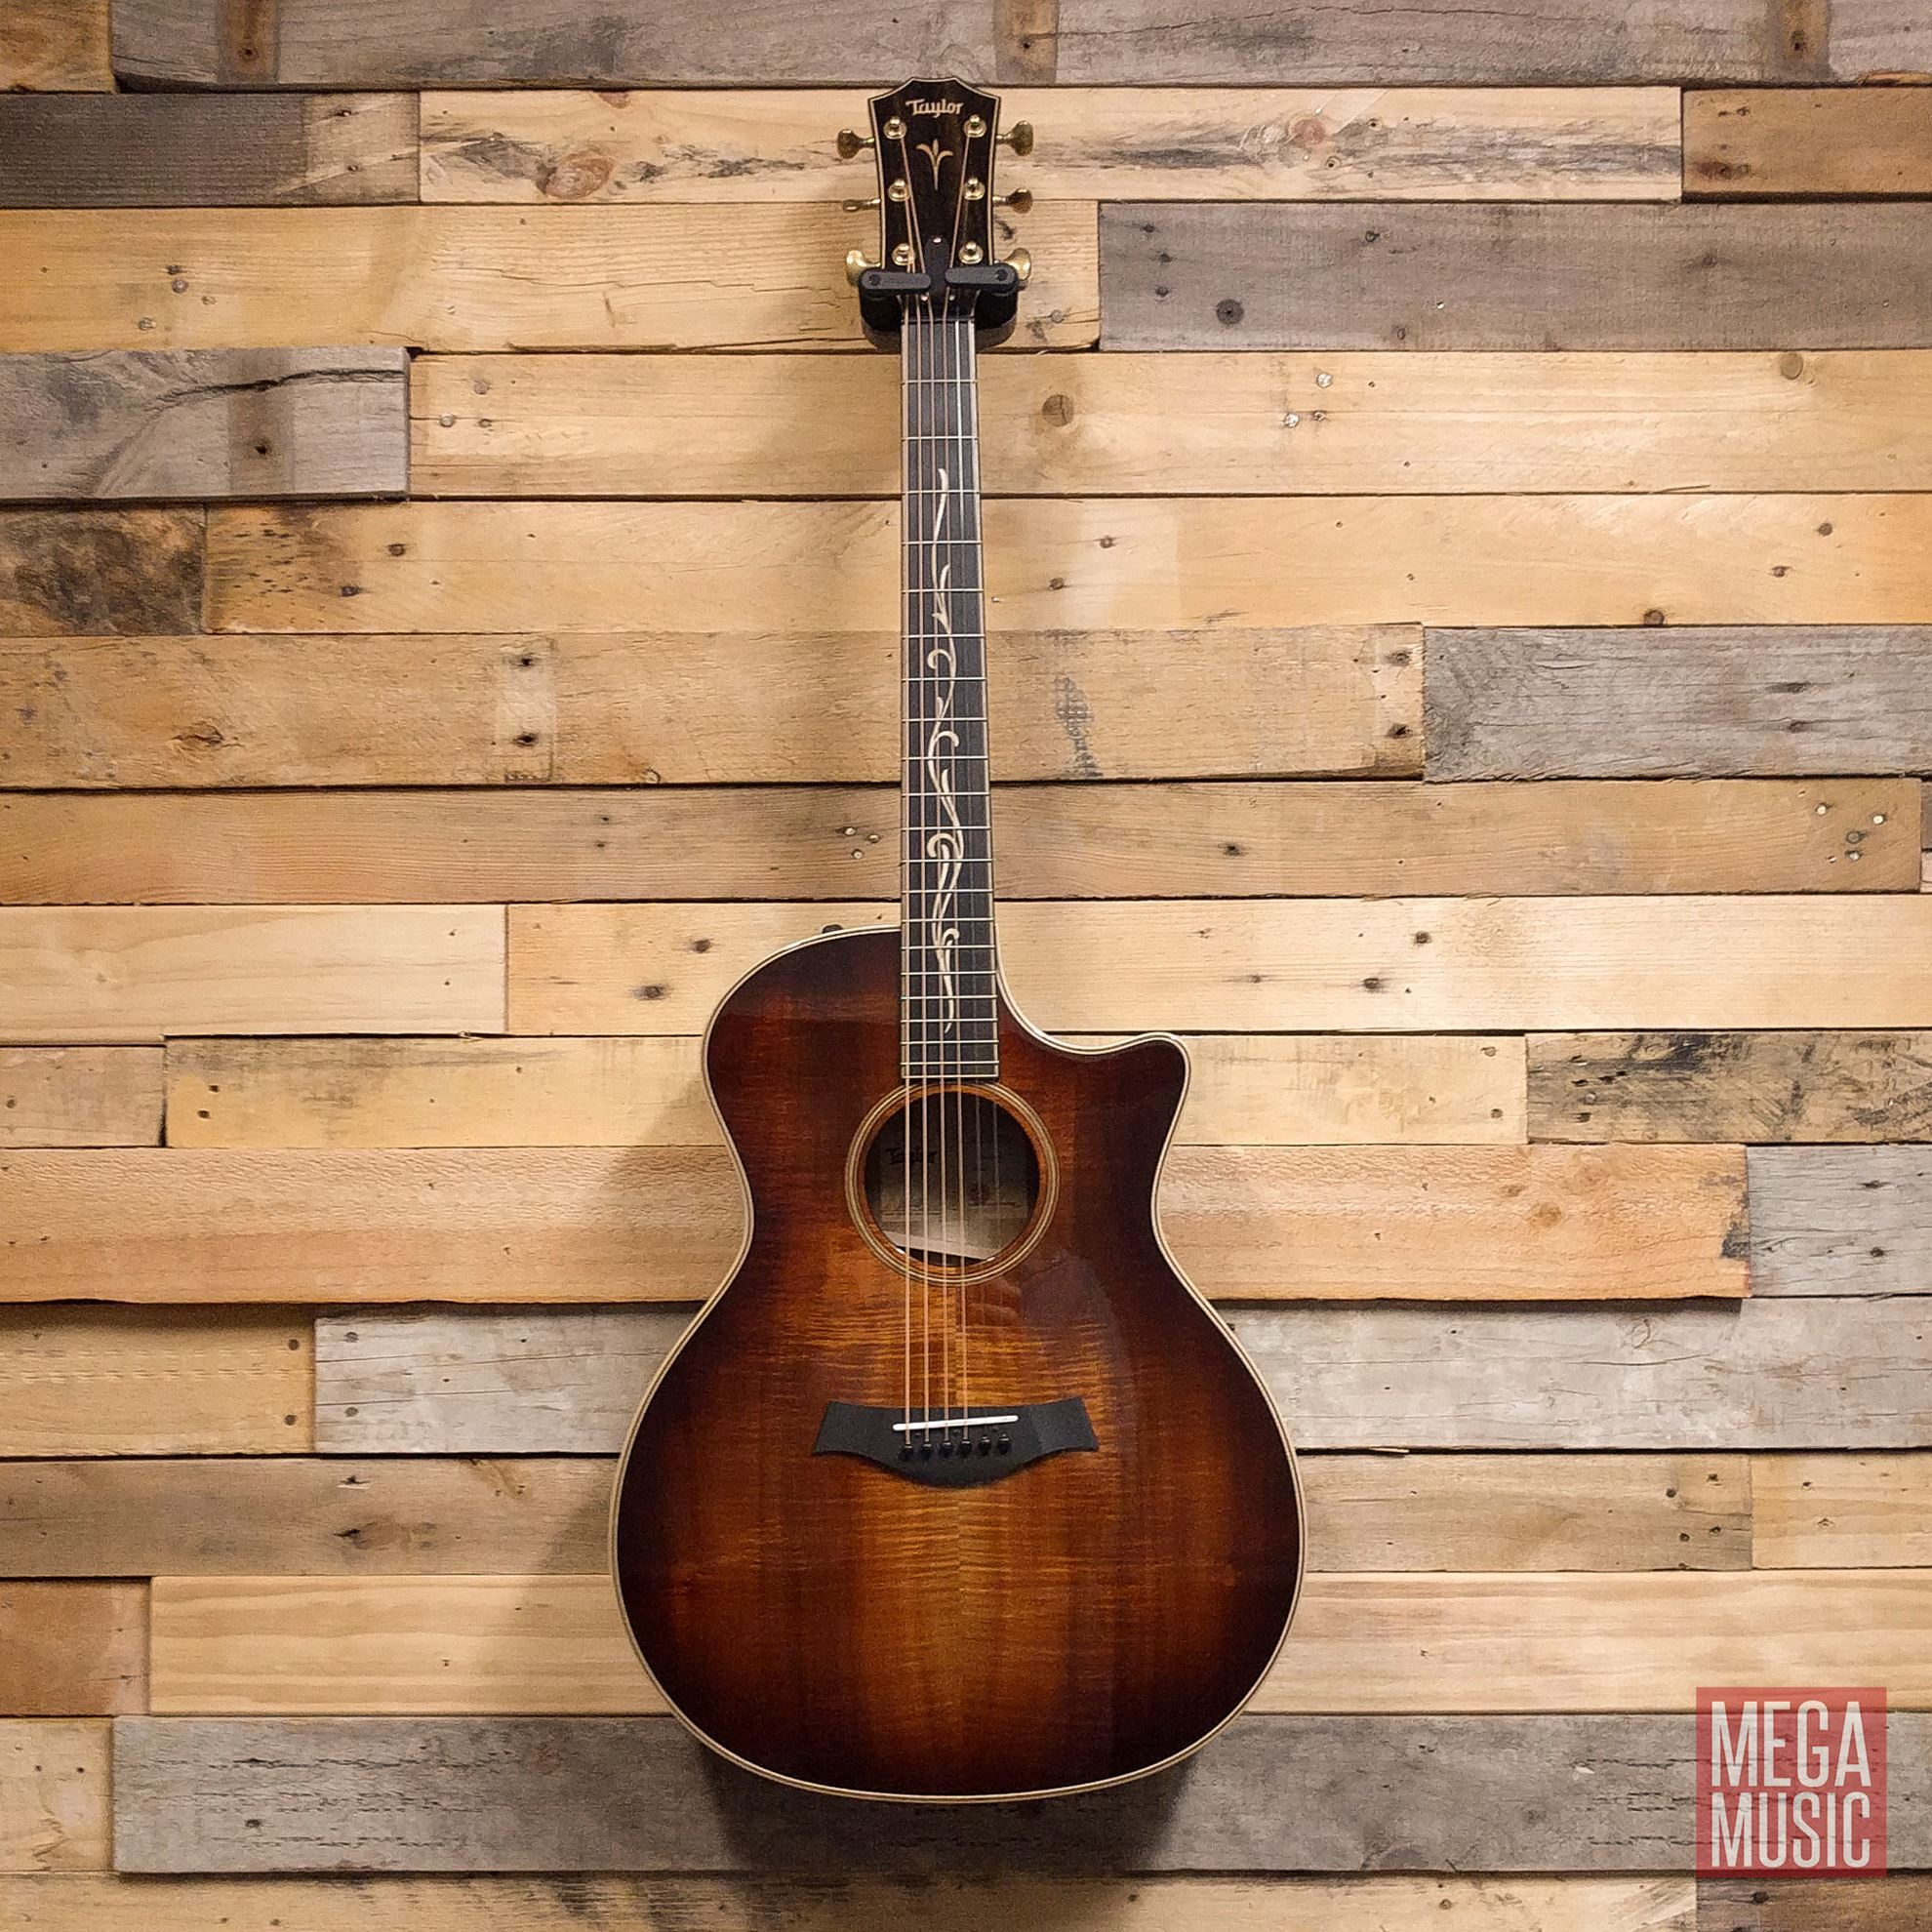 Taylor K24ce Koa Acoustic Guitar with Pickup and Cutaway ...